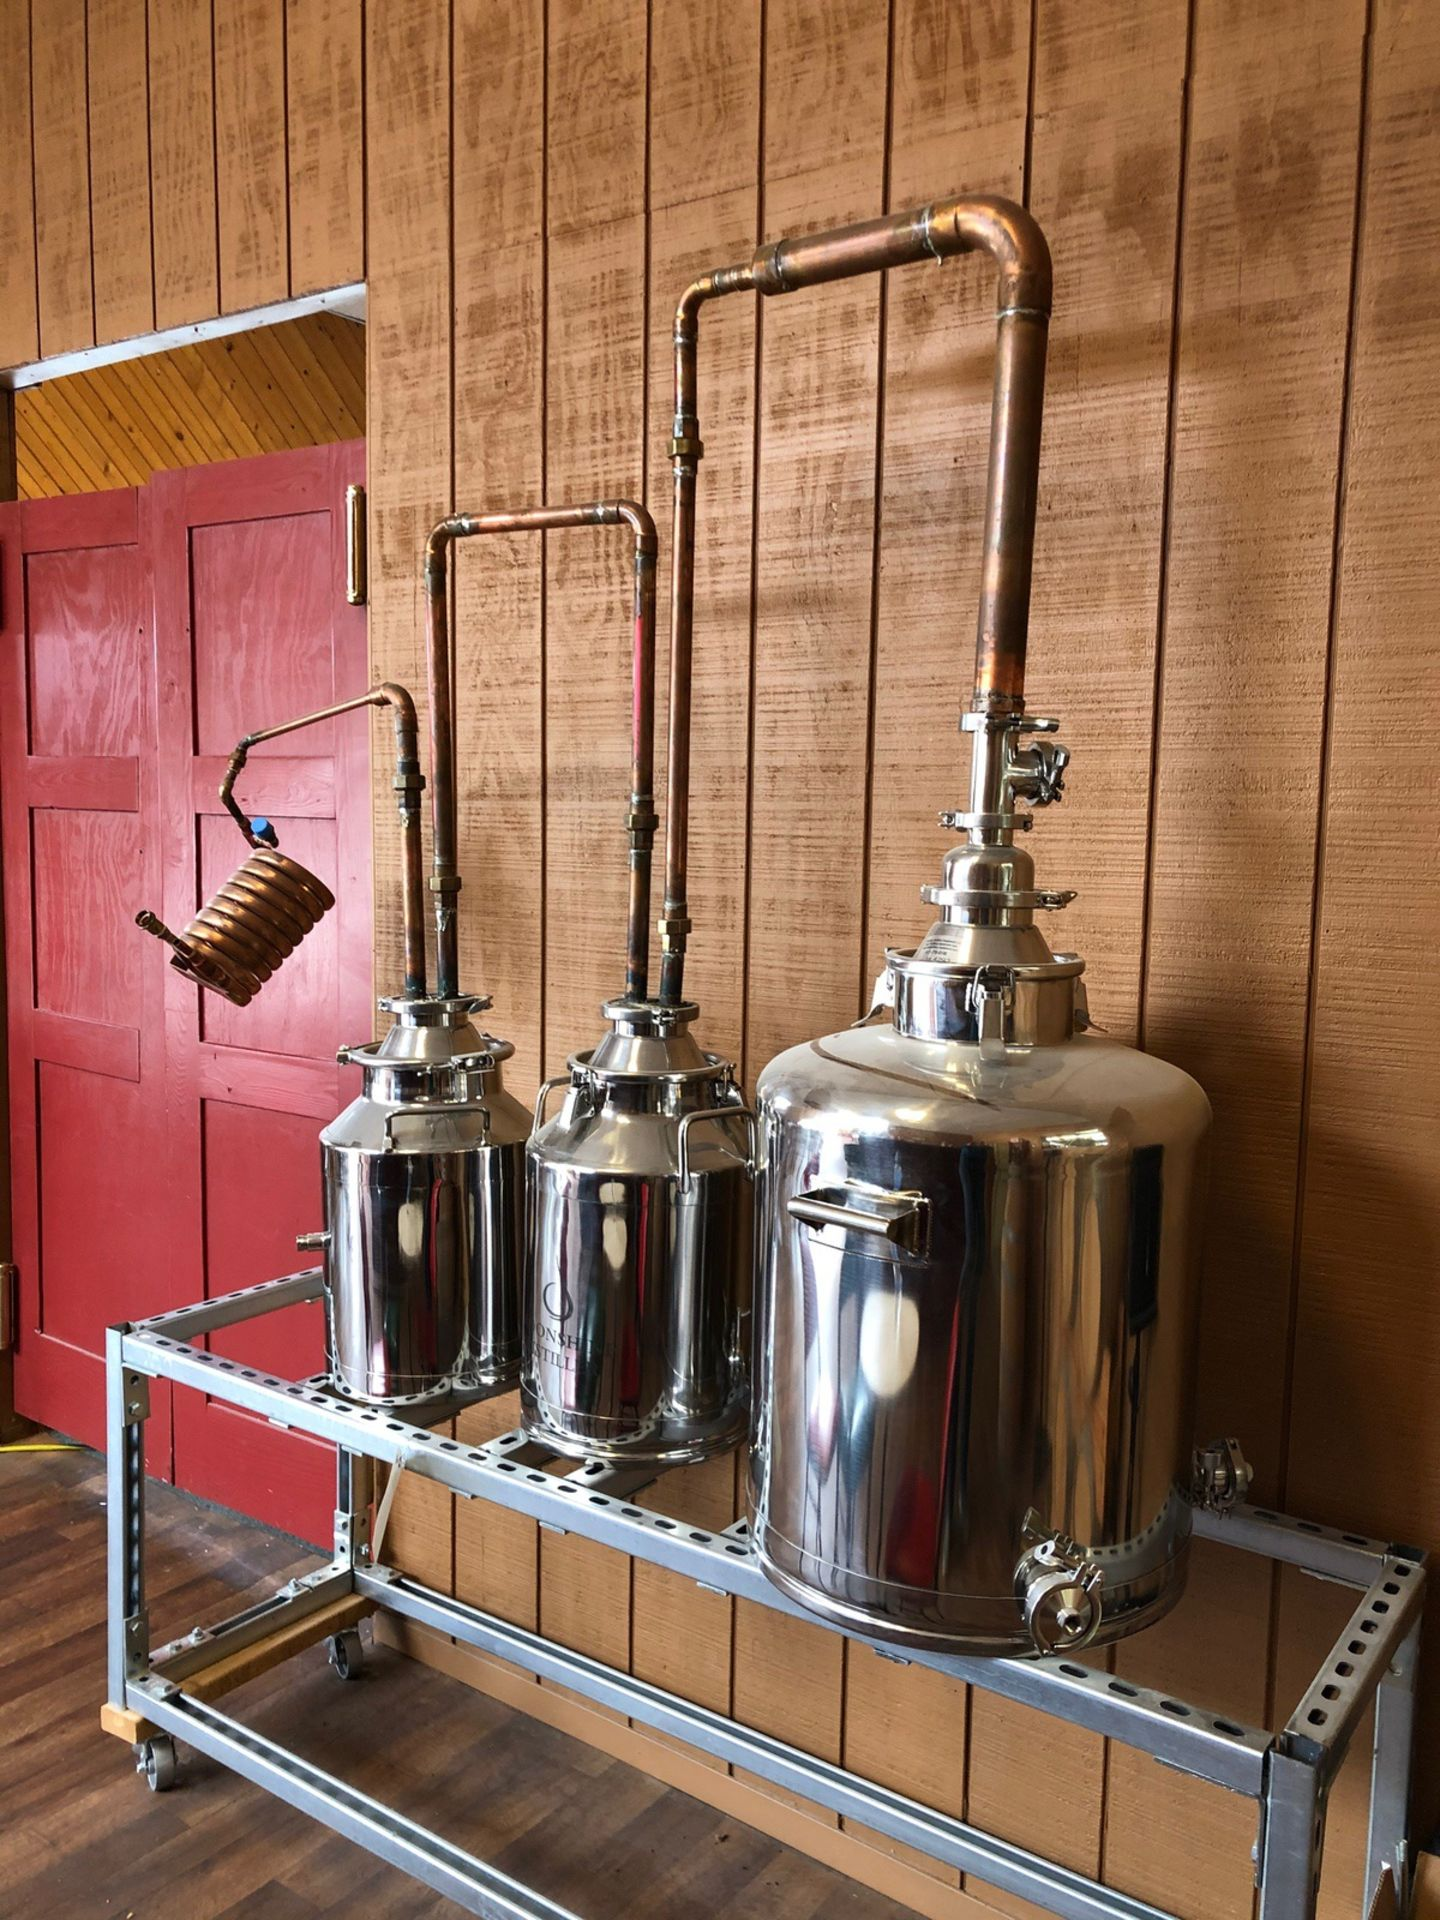 Lot 16 - Moonshine Distillery 3-Vessel Display Still | Sub to Bulk | Rig Fee: $50 or HC